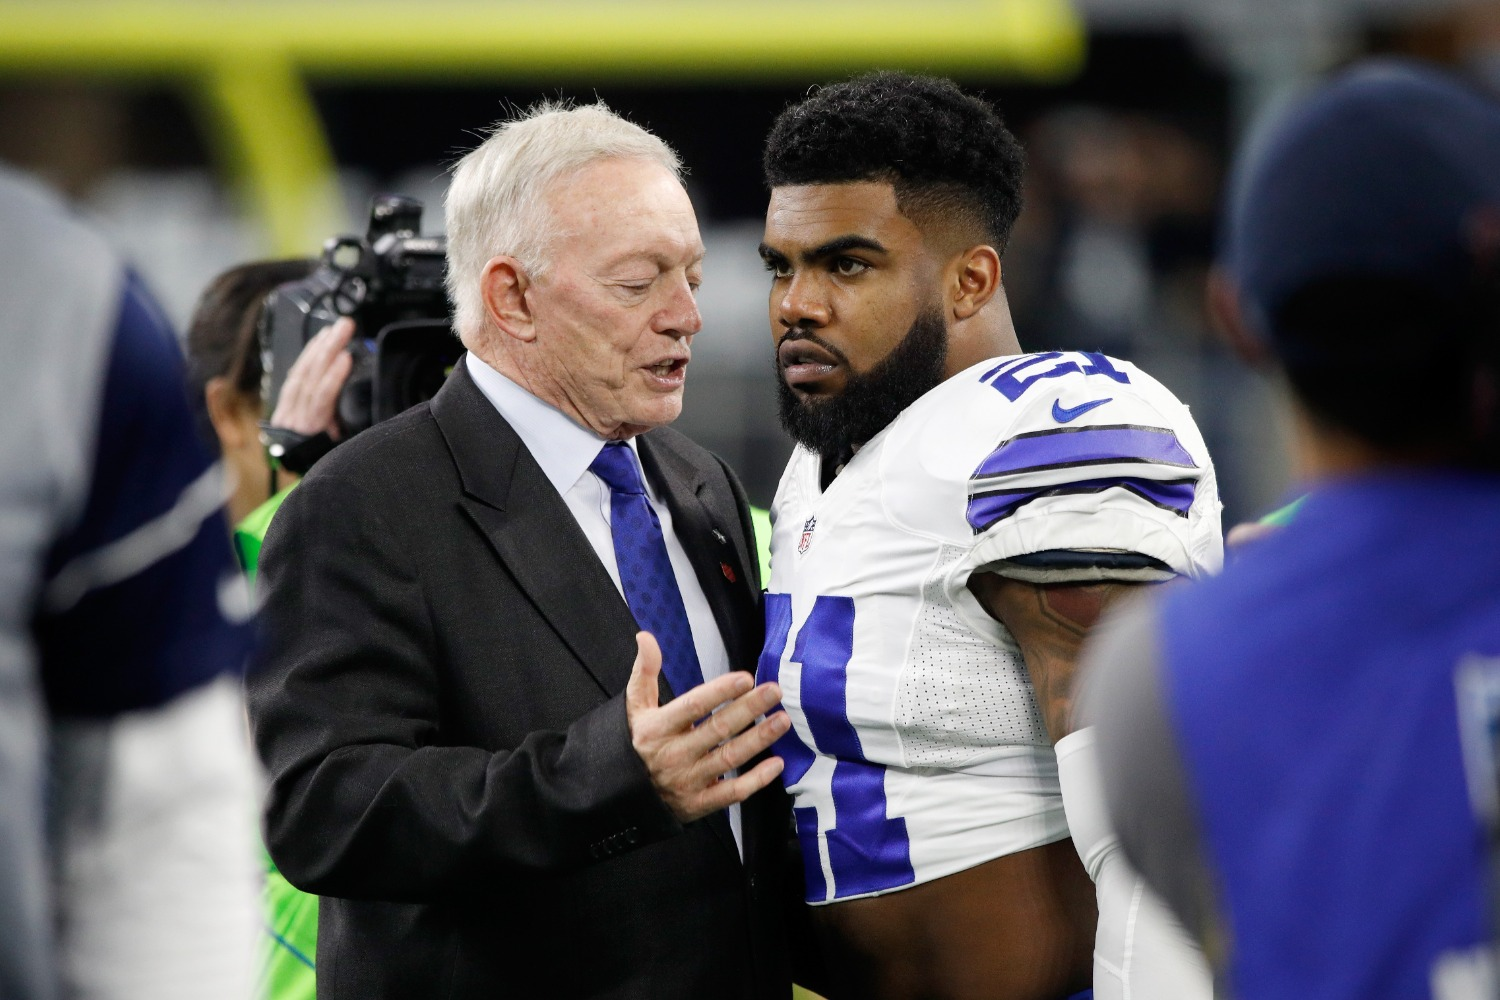 Cowboys owner Jerry Jones revealed a new role for Ezekiel Elliott that could propel Dallas to its first Super Bowl title since 1996.